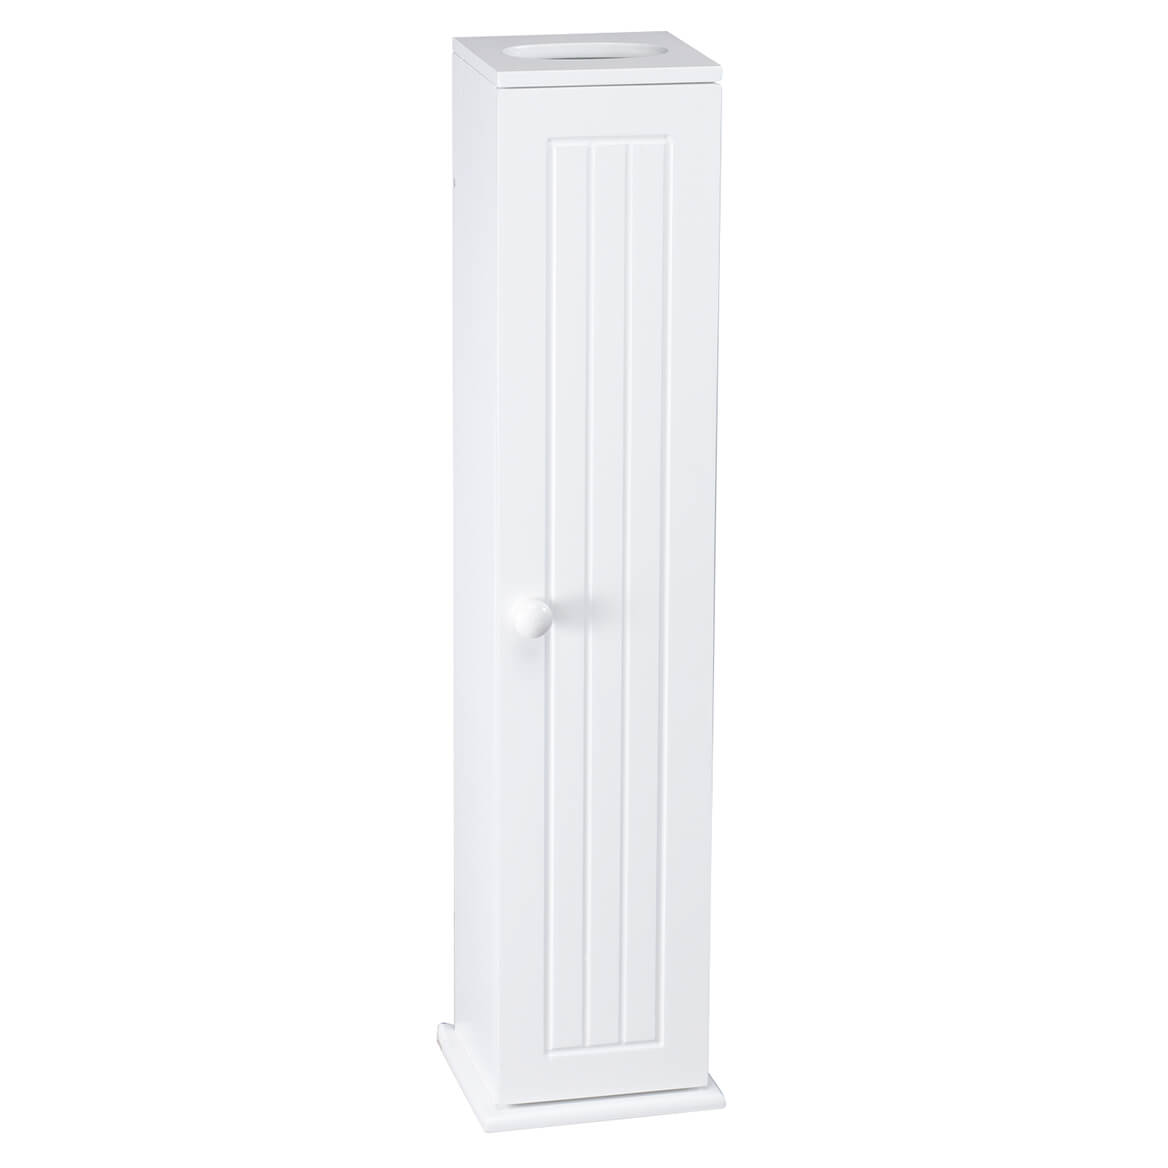 Toilet Tissue Tower by OakRidge™-352695